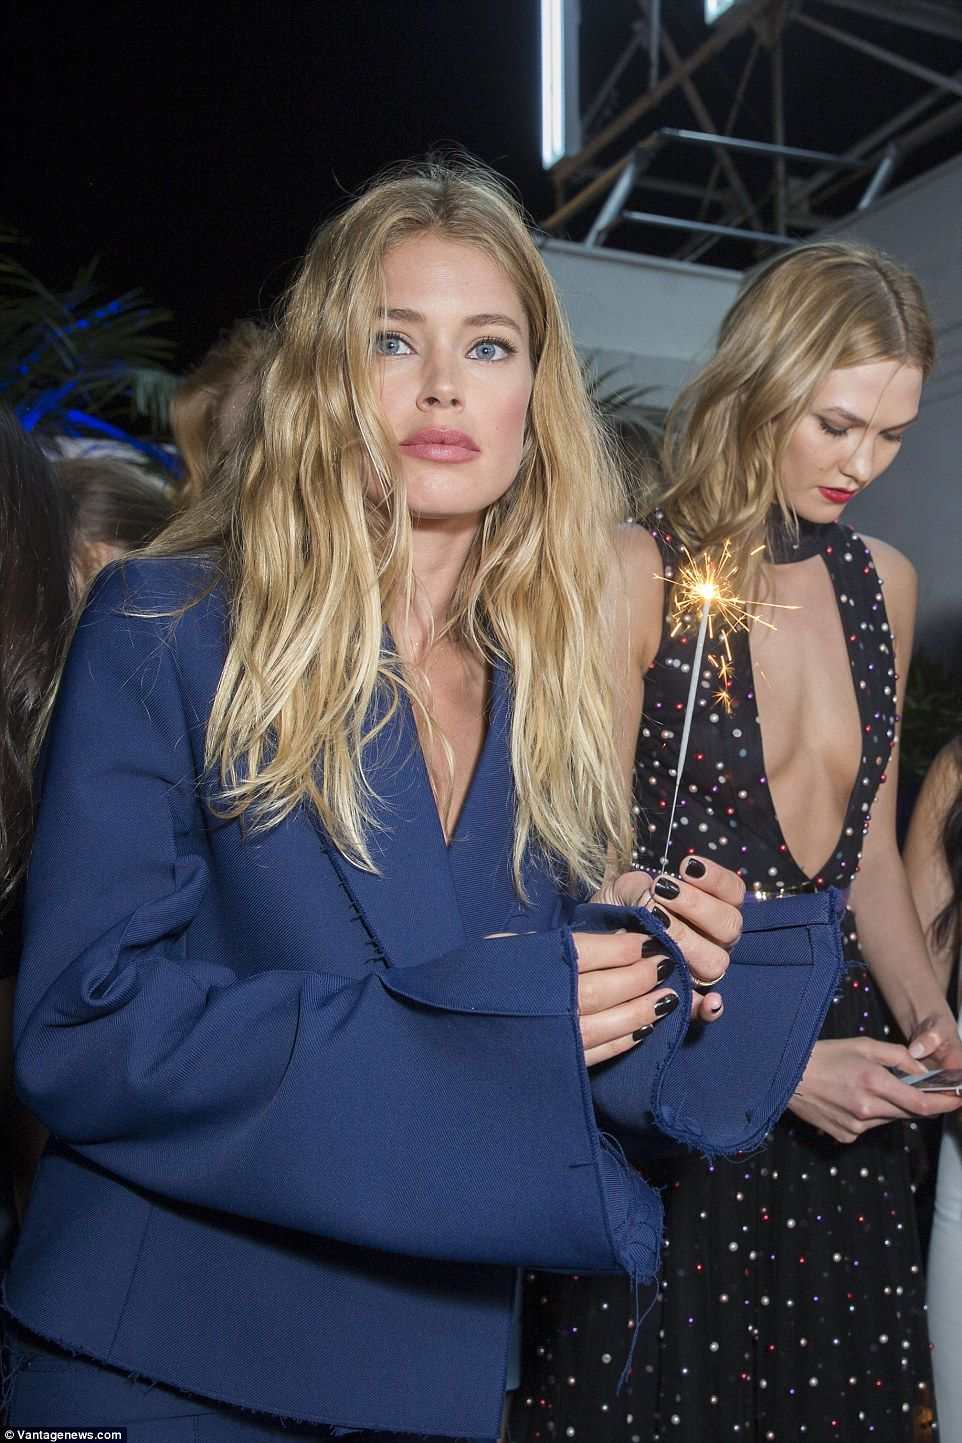 Doutzen Kroes licks a cake at L'Oreal Blue Obsession Party in Cannes – boss